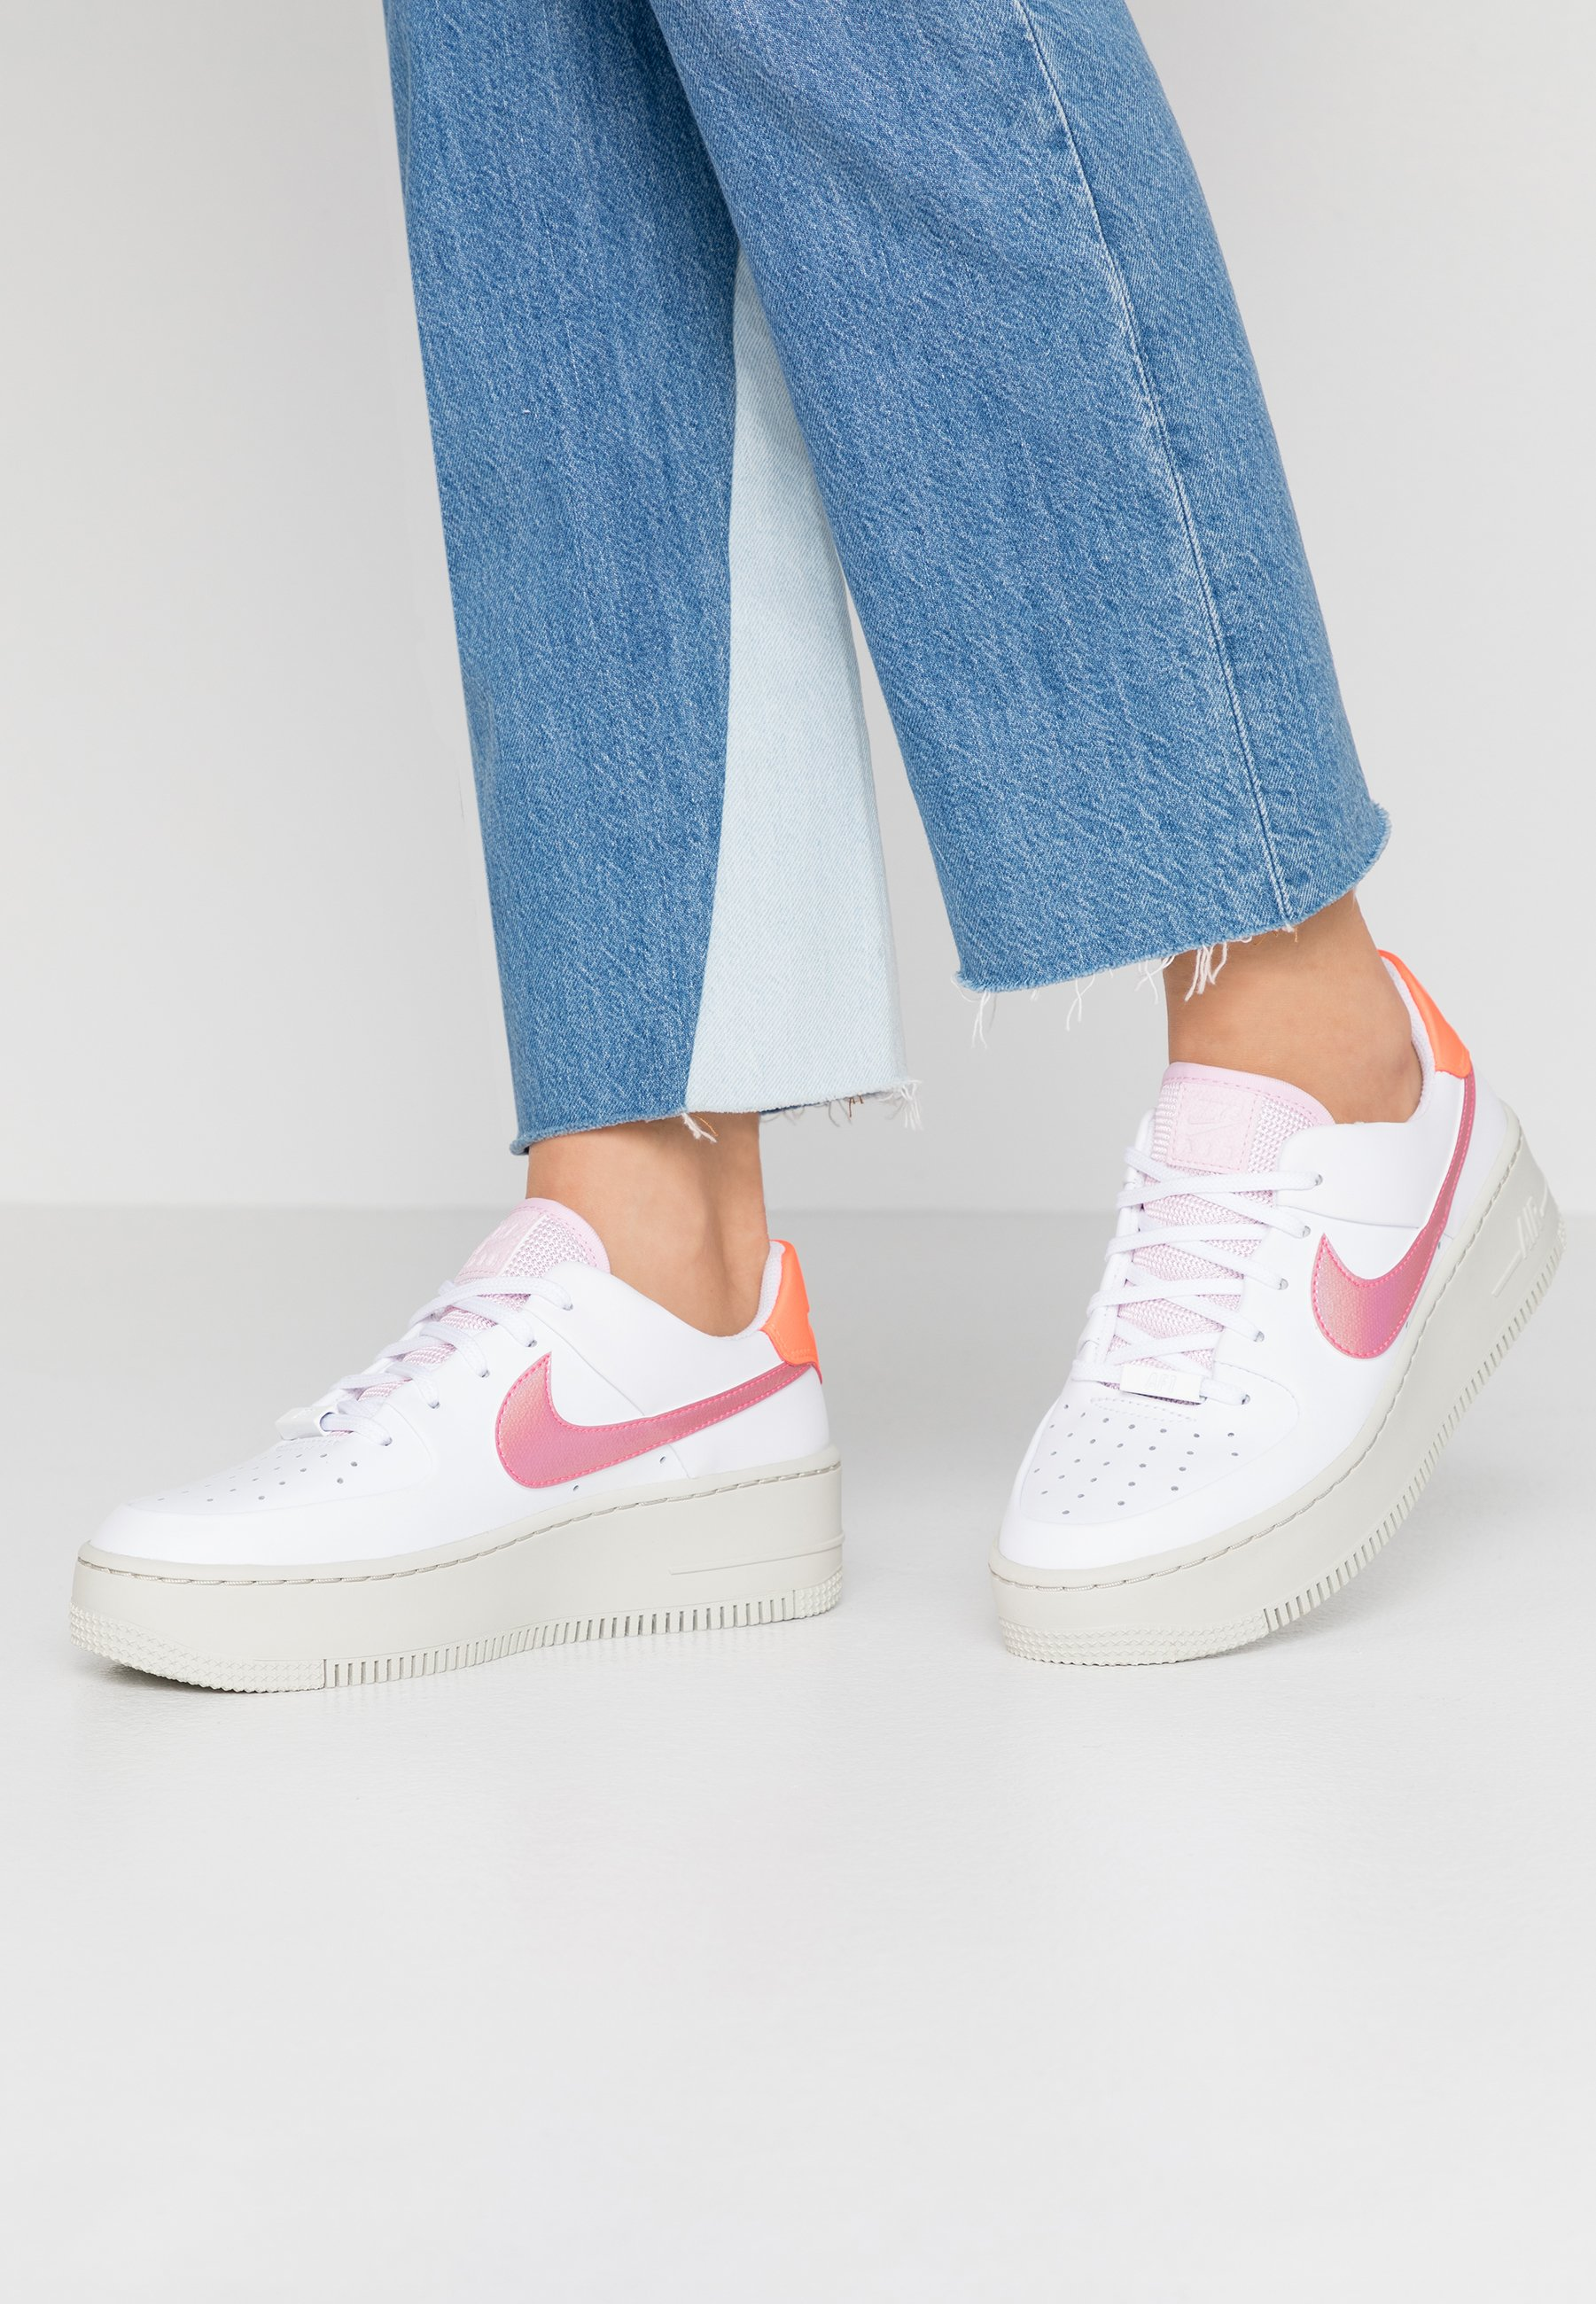 Nike Women's Air Force 1 Sage Low WhiteDigital Pink